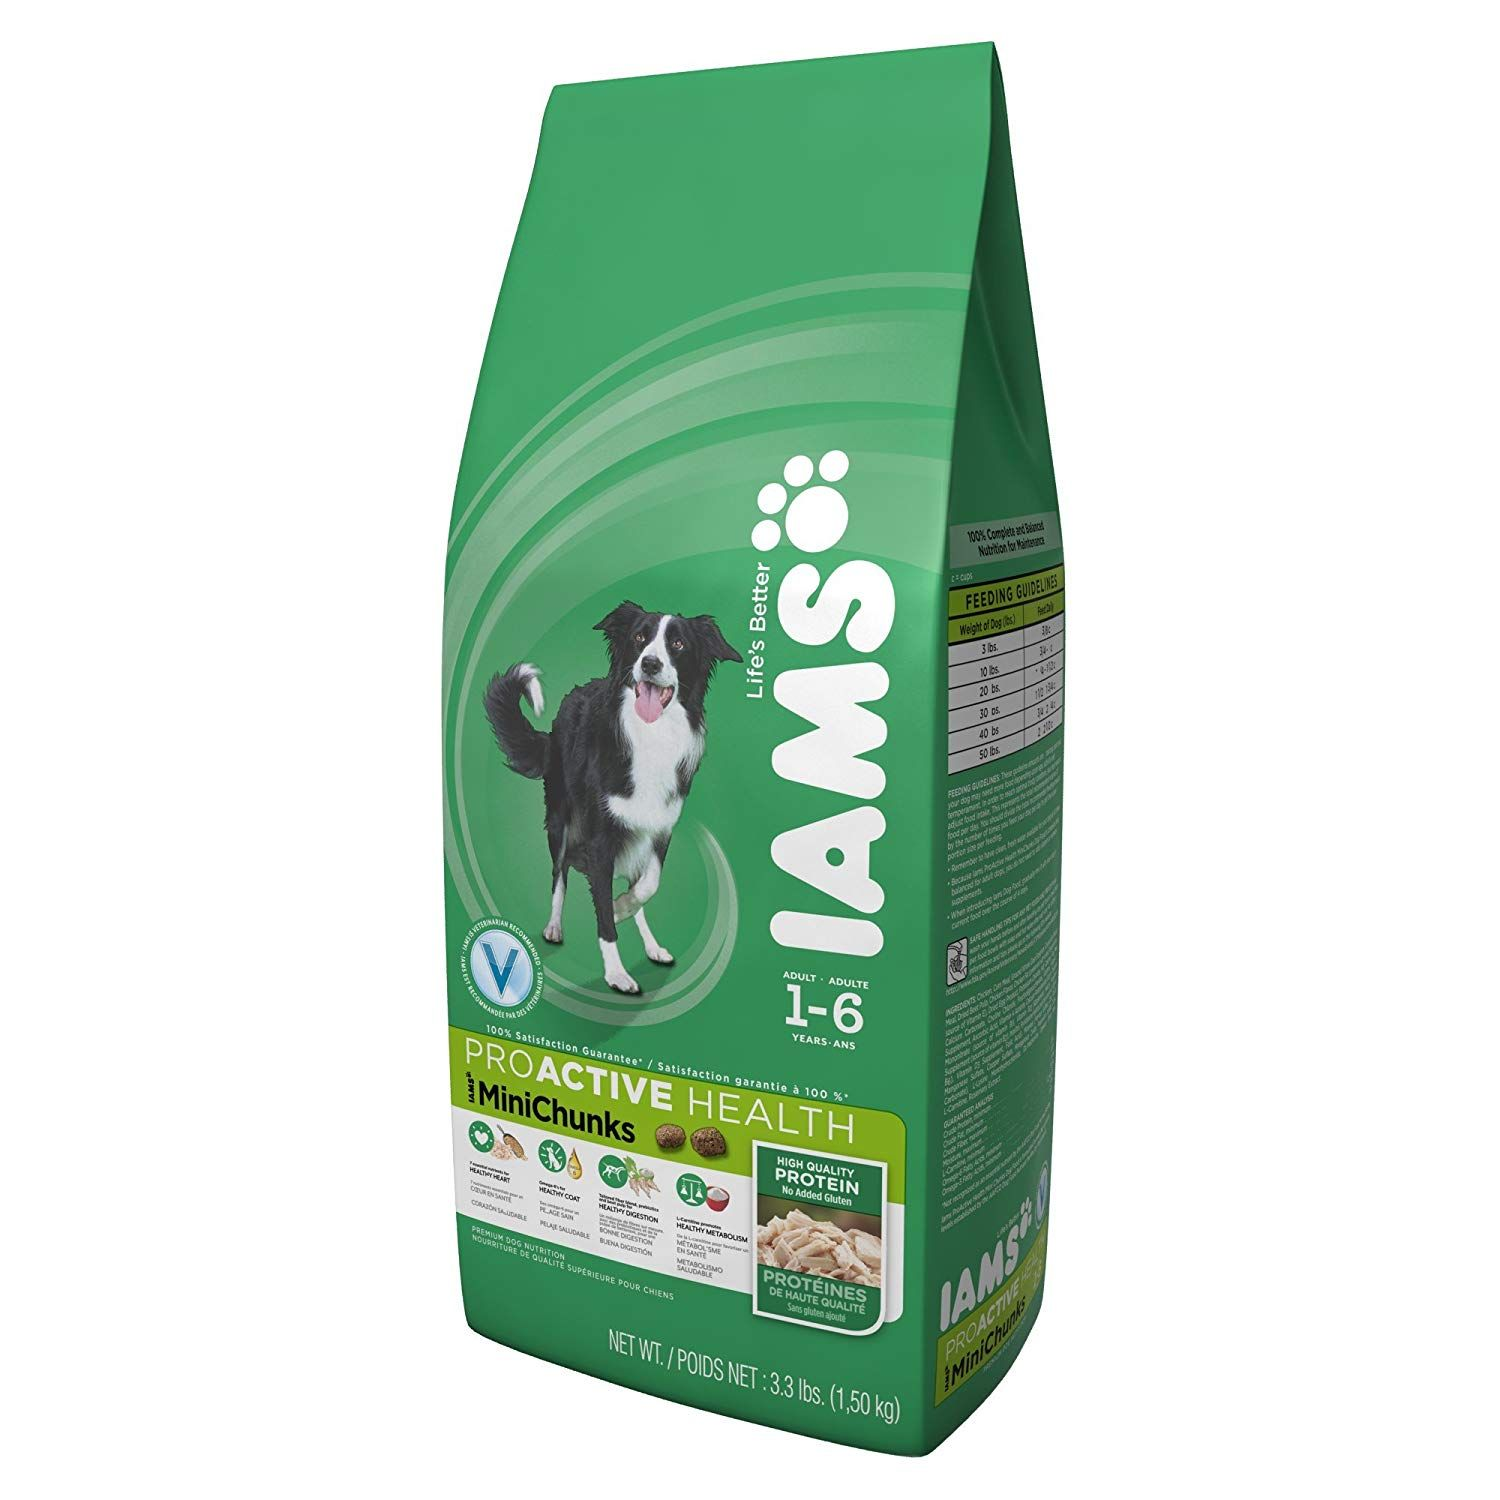 Iams ProActive Health Adult MiniChunks Premium Dog